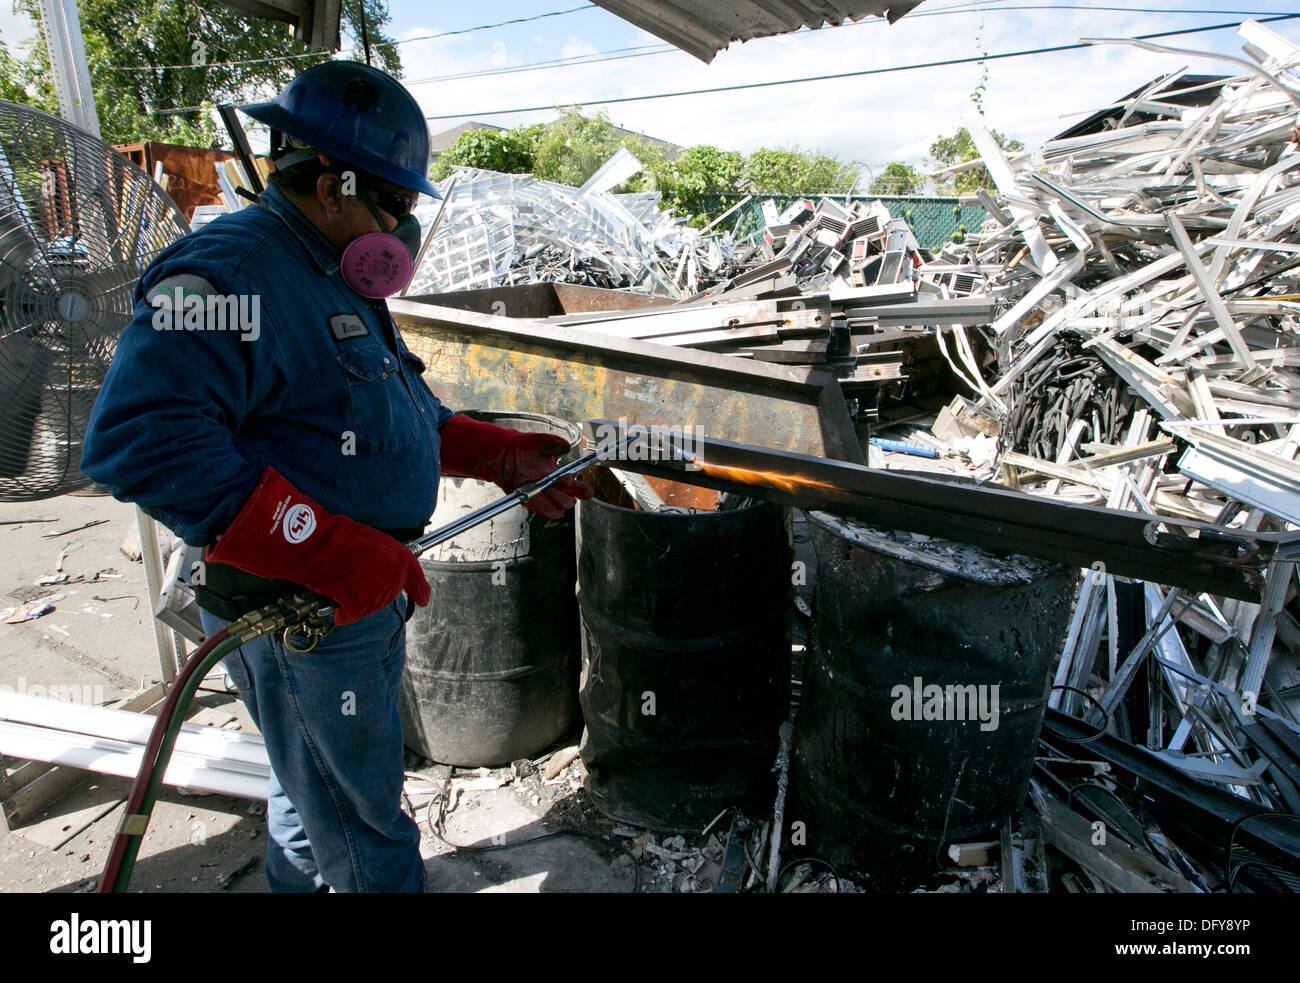 Male worker uses a blow torch to separate different types of metal for recycling at a scrap metal company in Texas - Stock Image